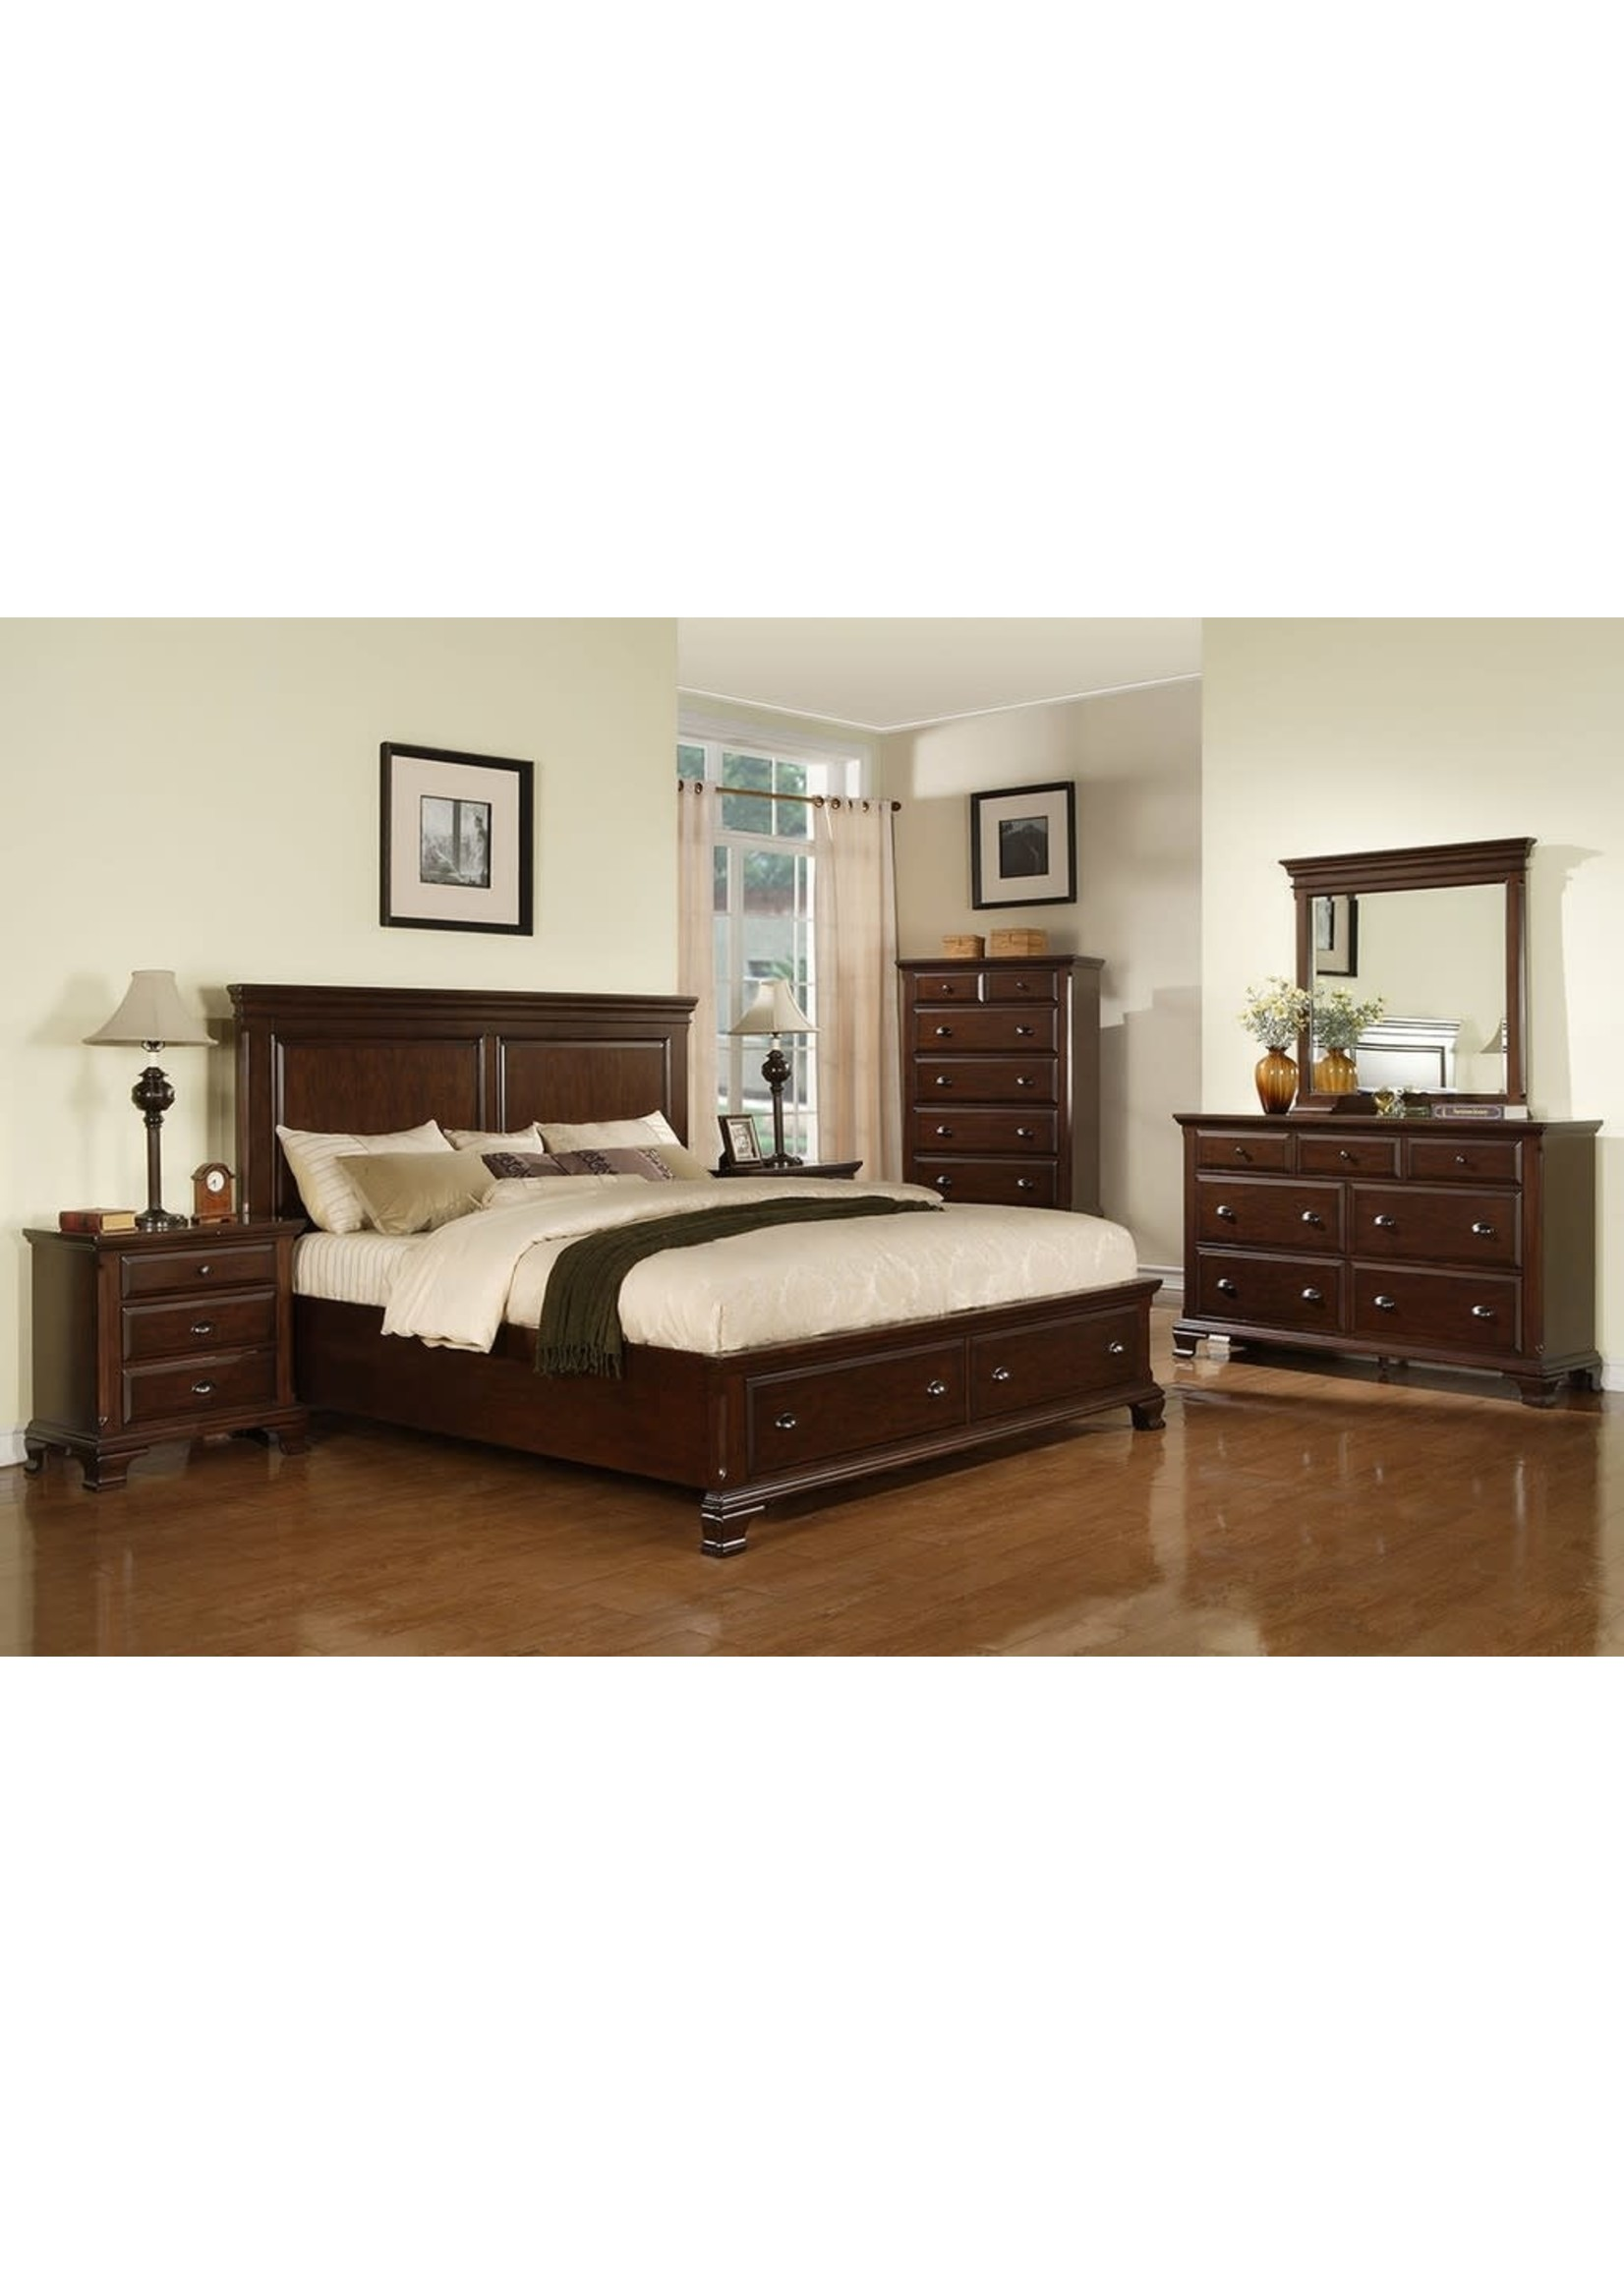 ELEMENTS KING STORAGE BED CANTON CHERRY